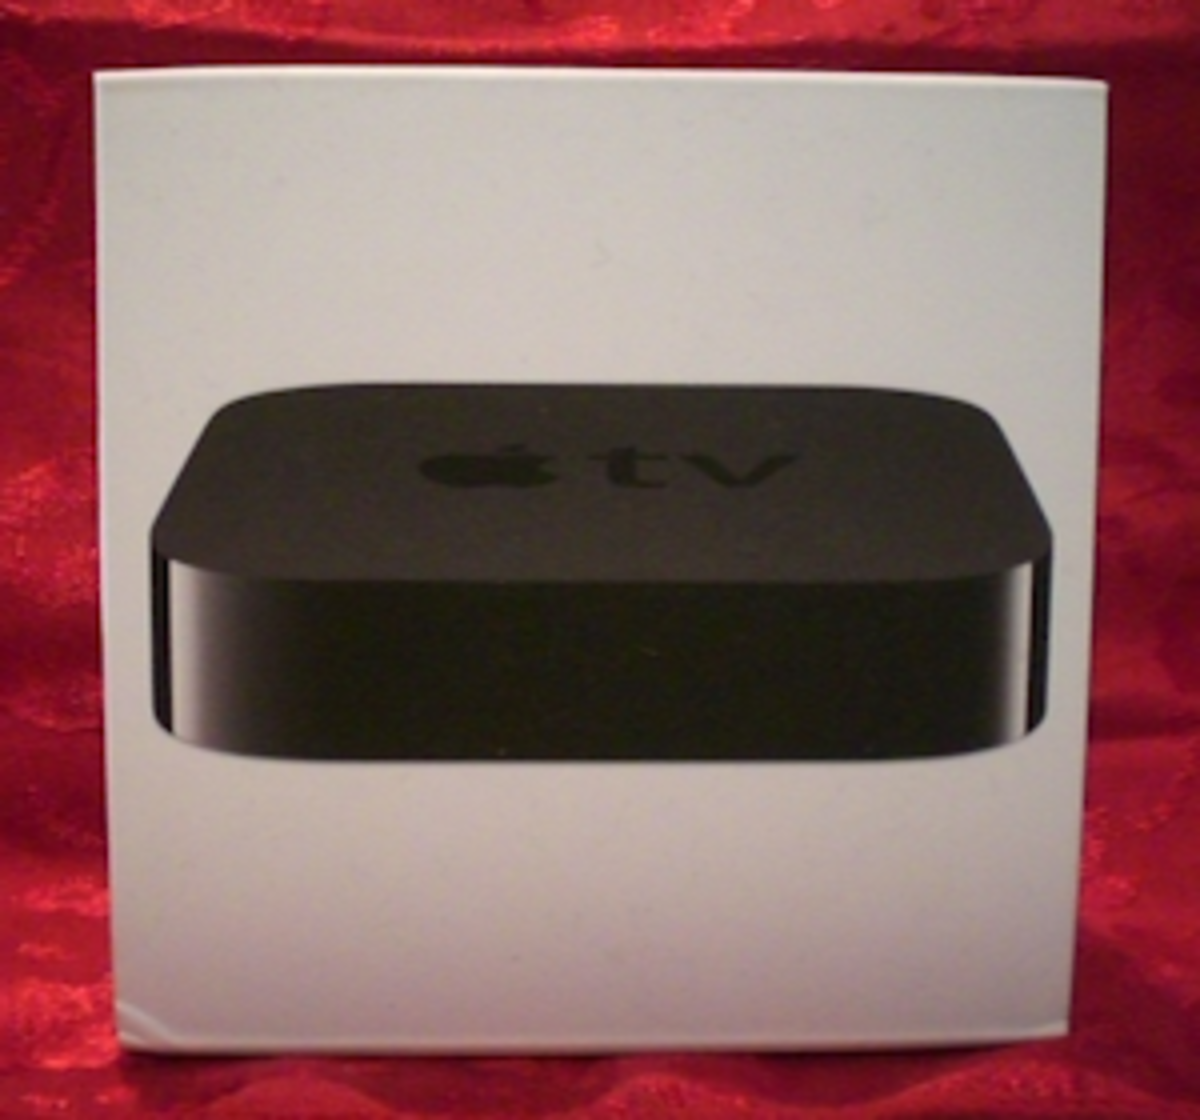 Front of packaging box for Apple TV.